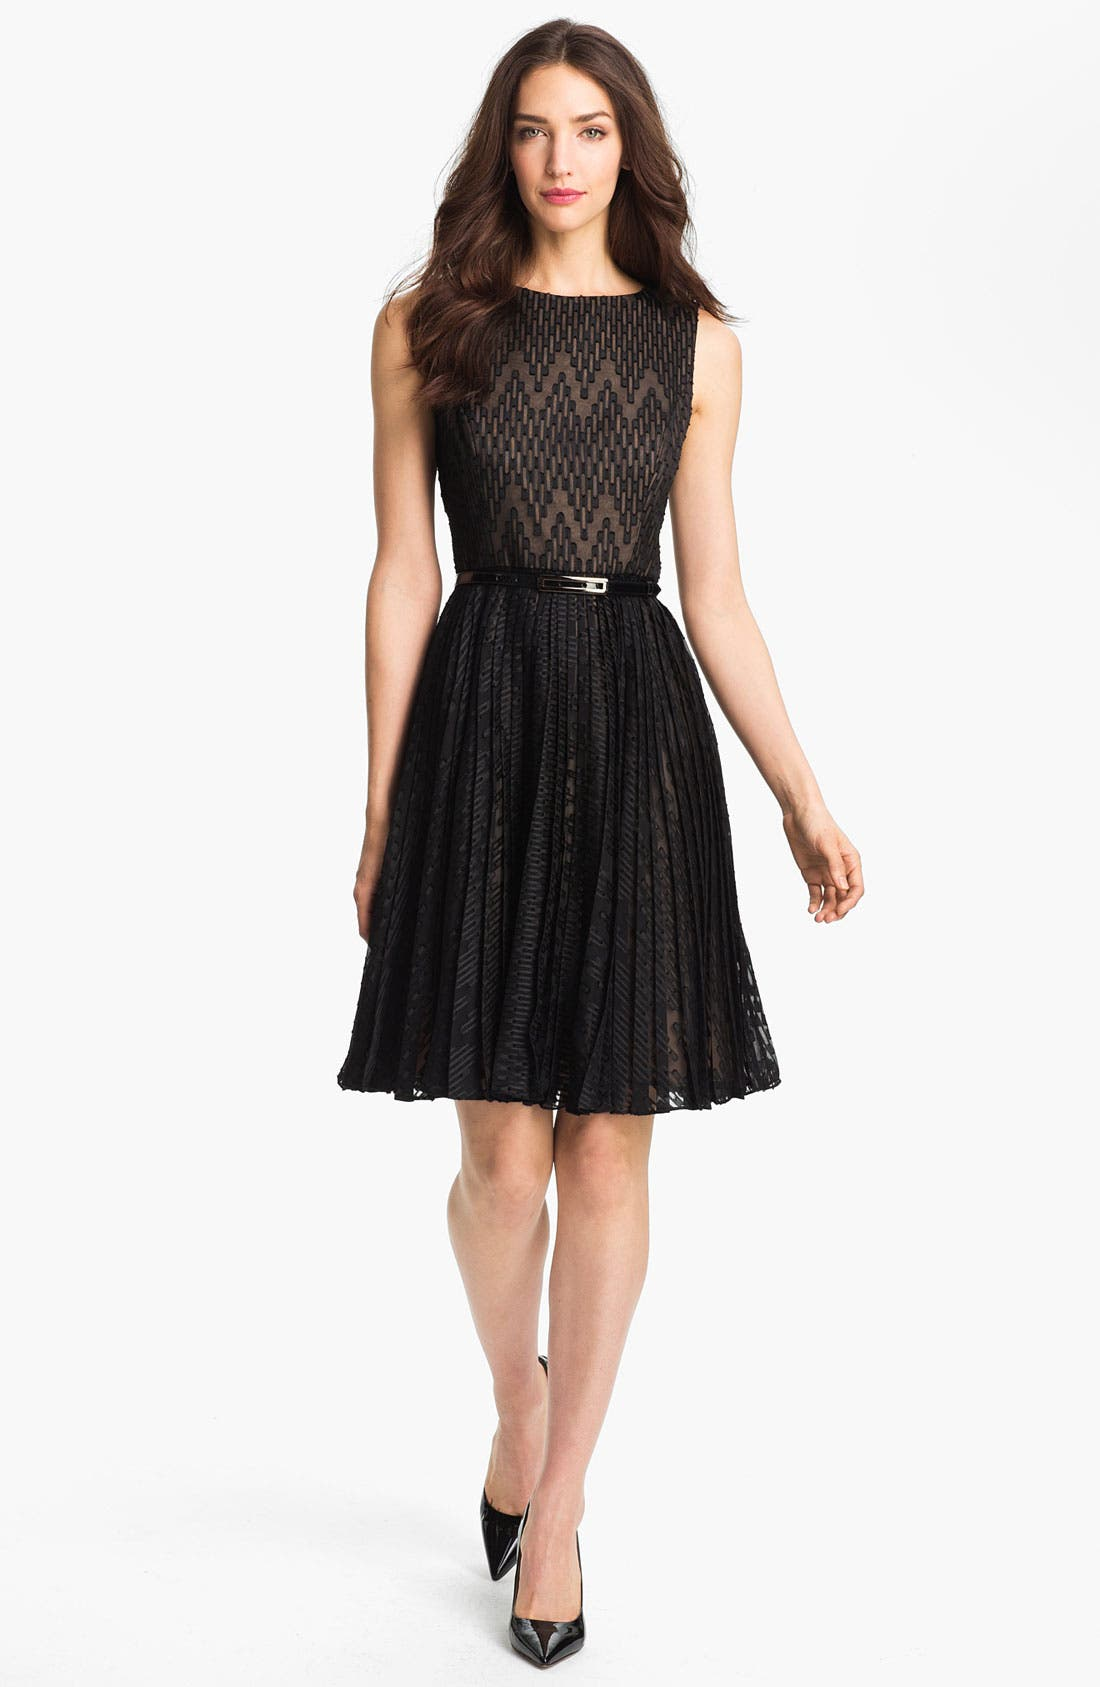 Alternate Image 1 Selected - Adrianna Papell Textured Fit & Flare Dress (Regular & Petite)